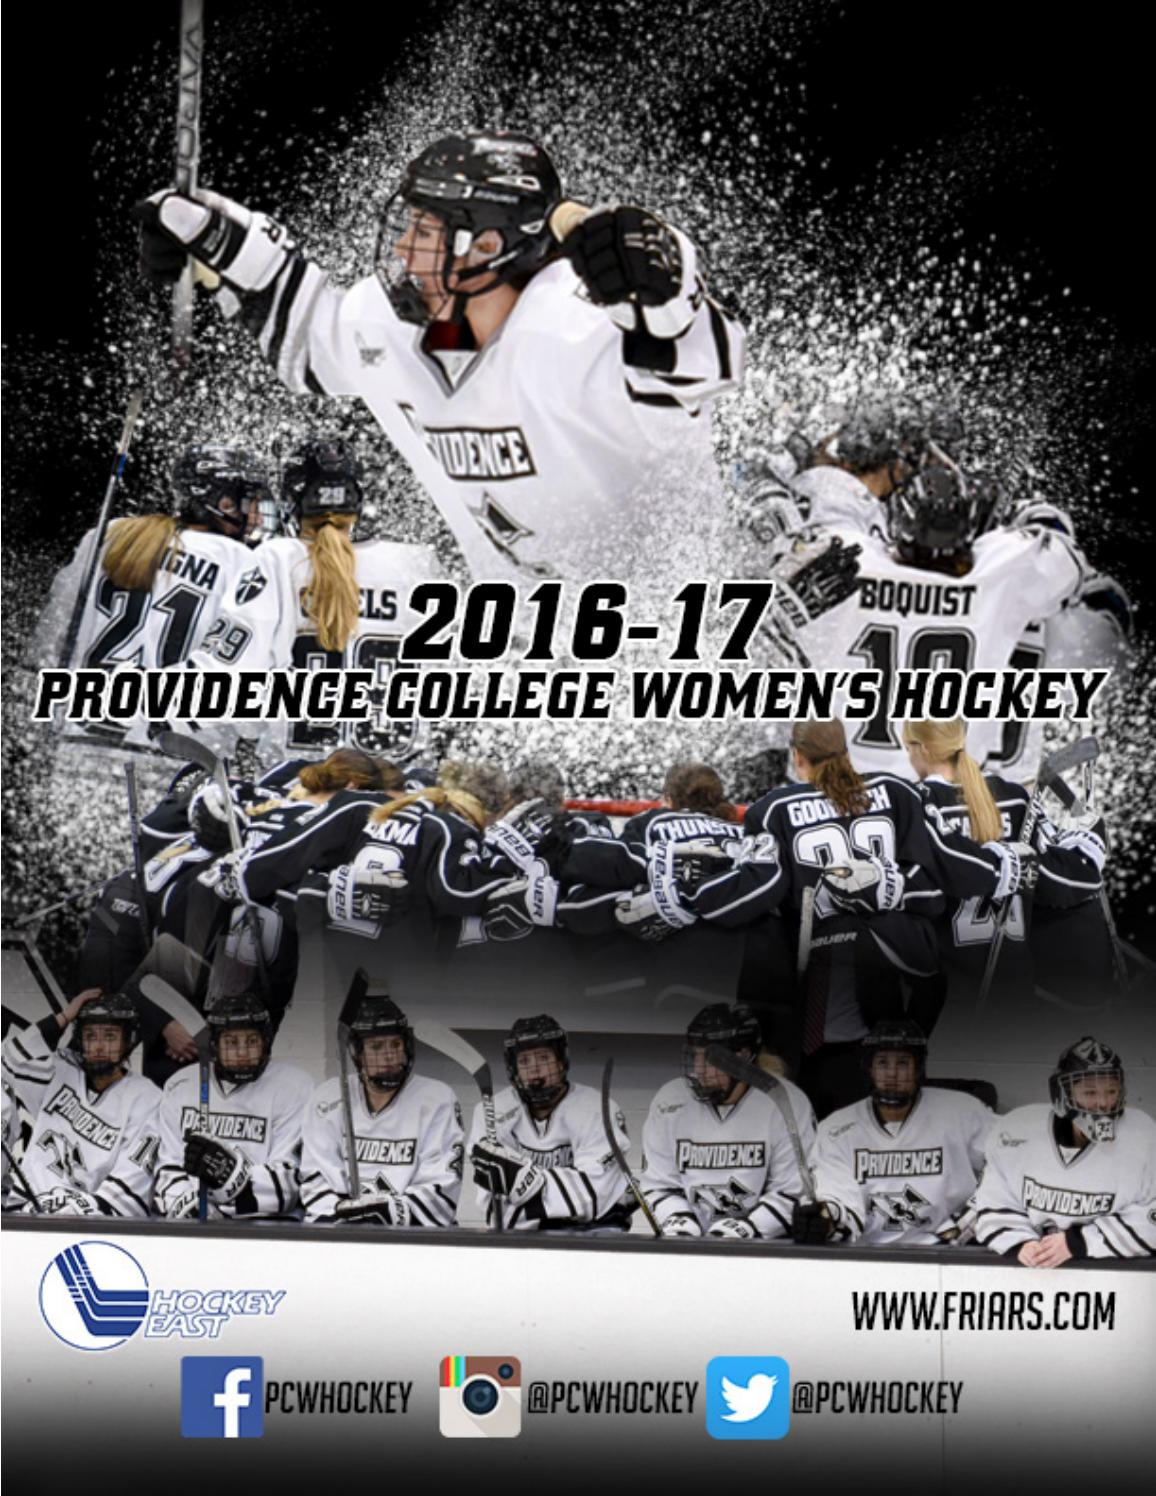 Women s Ice Hockey 2016-17 Guide by Providence College - issuu 9d64c85f2